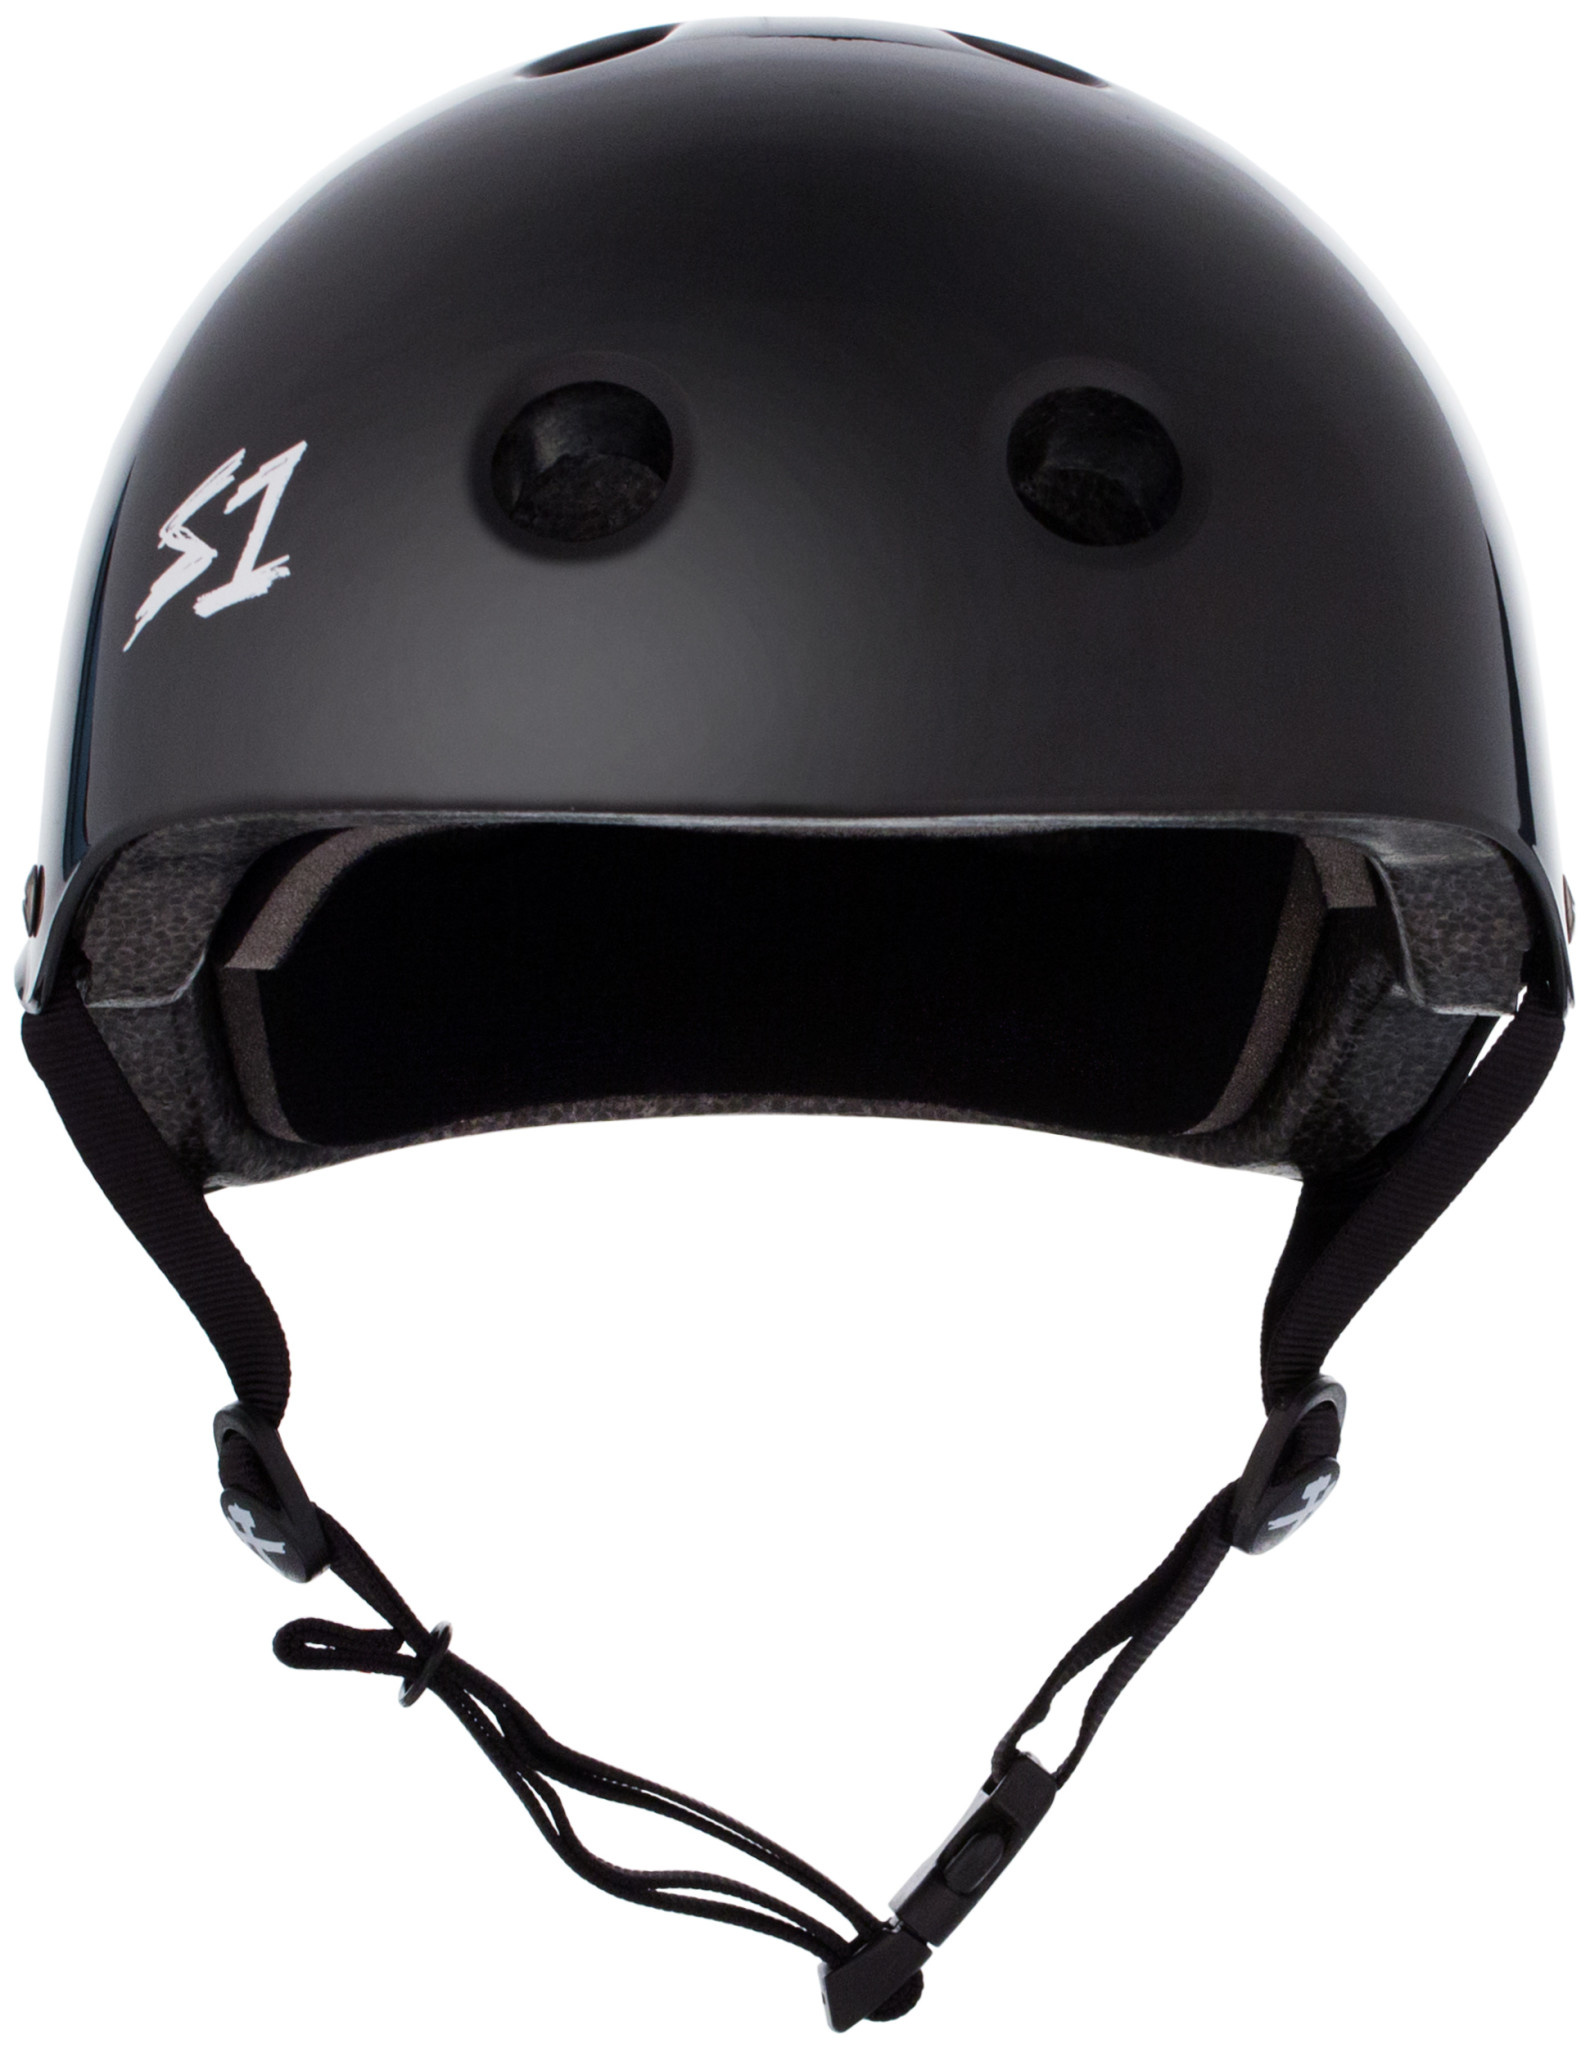 S-1 Lifer Helmet - Black Gloss